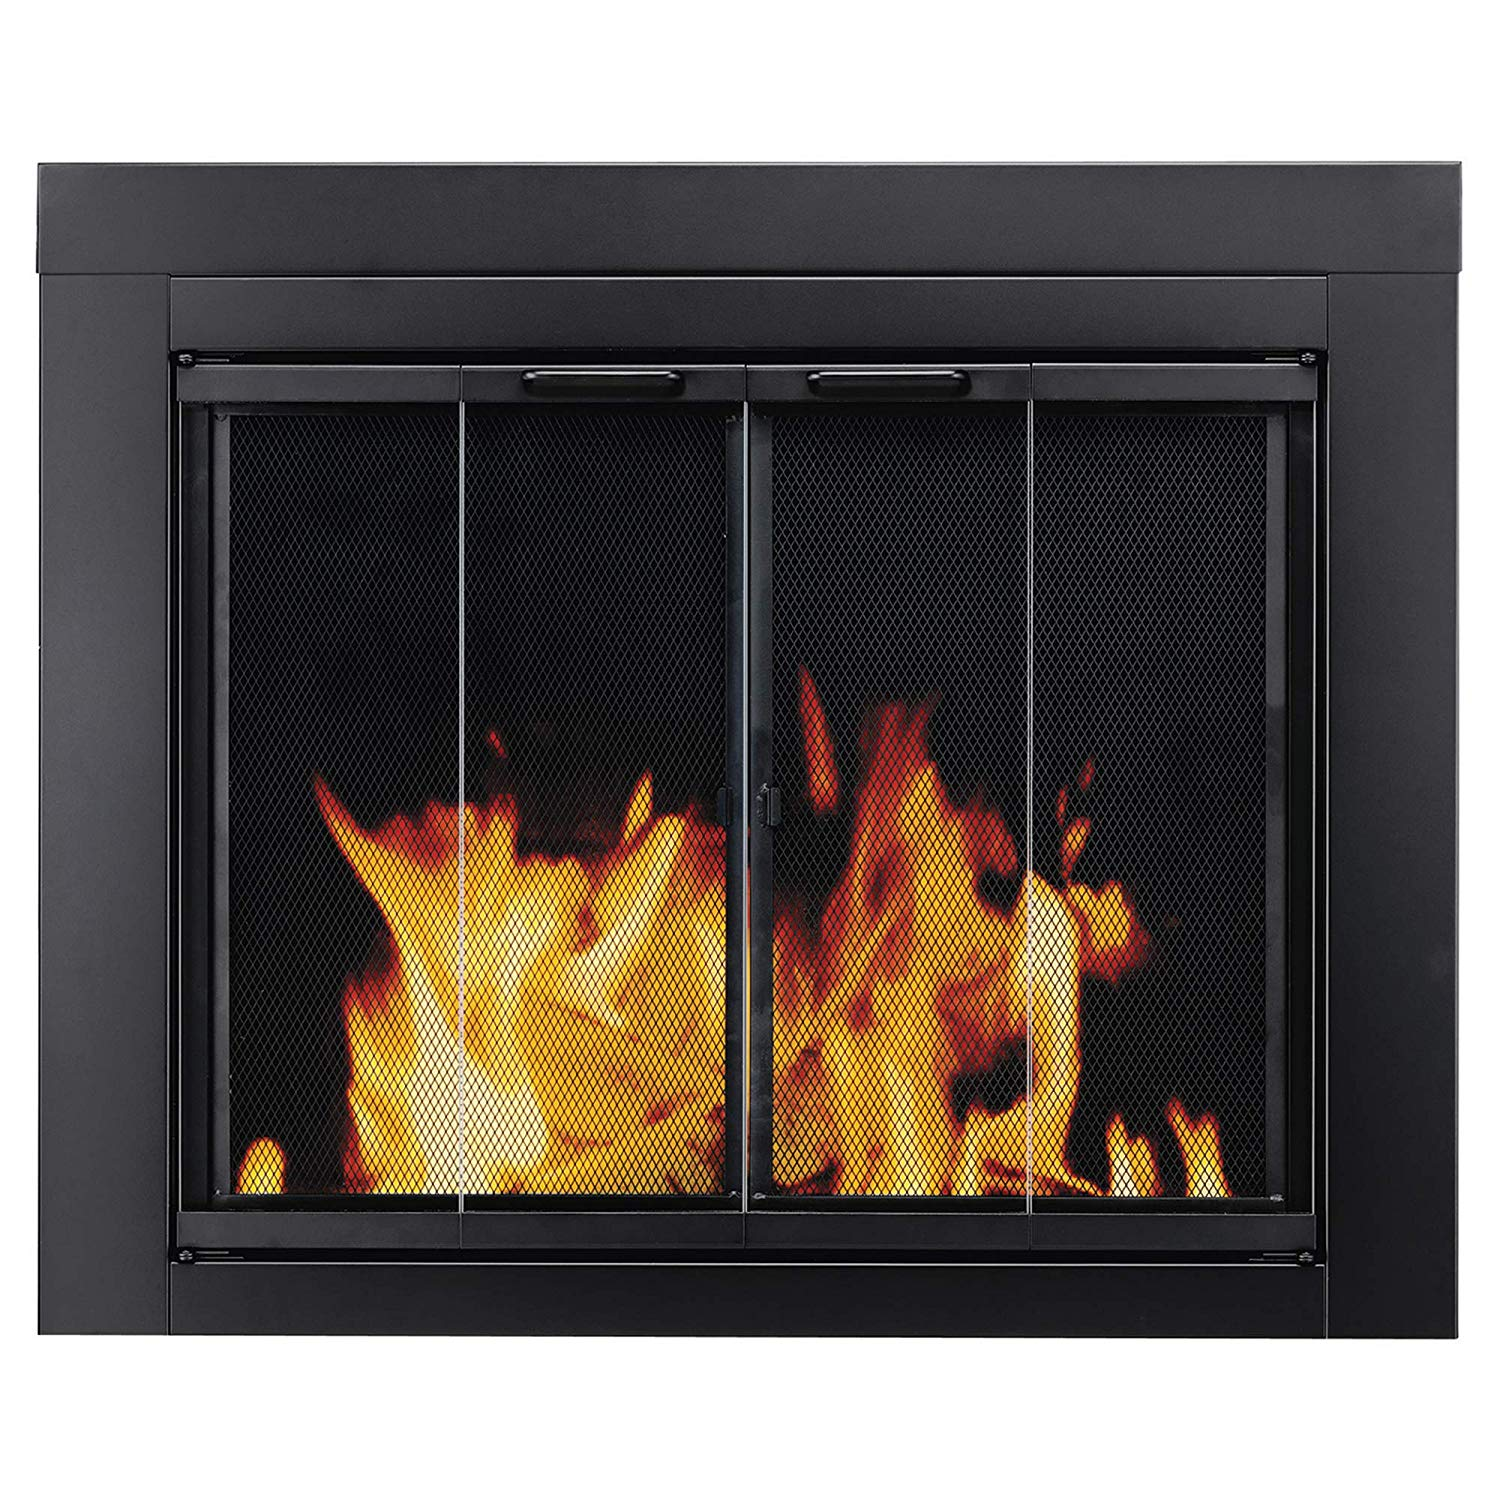 Mesh Fireplace Screen Lovely Pleasant Hearth at 1000 ascot Fireplace Glass Door Black Small